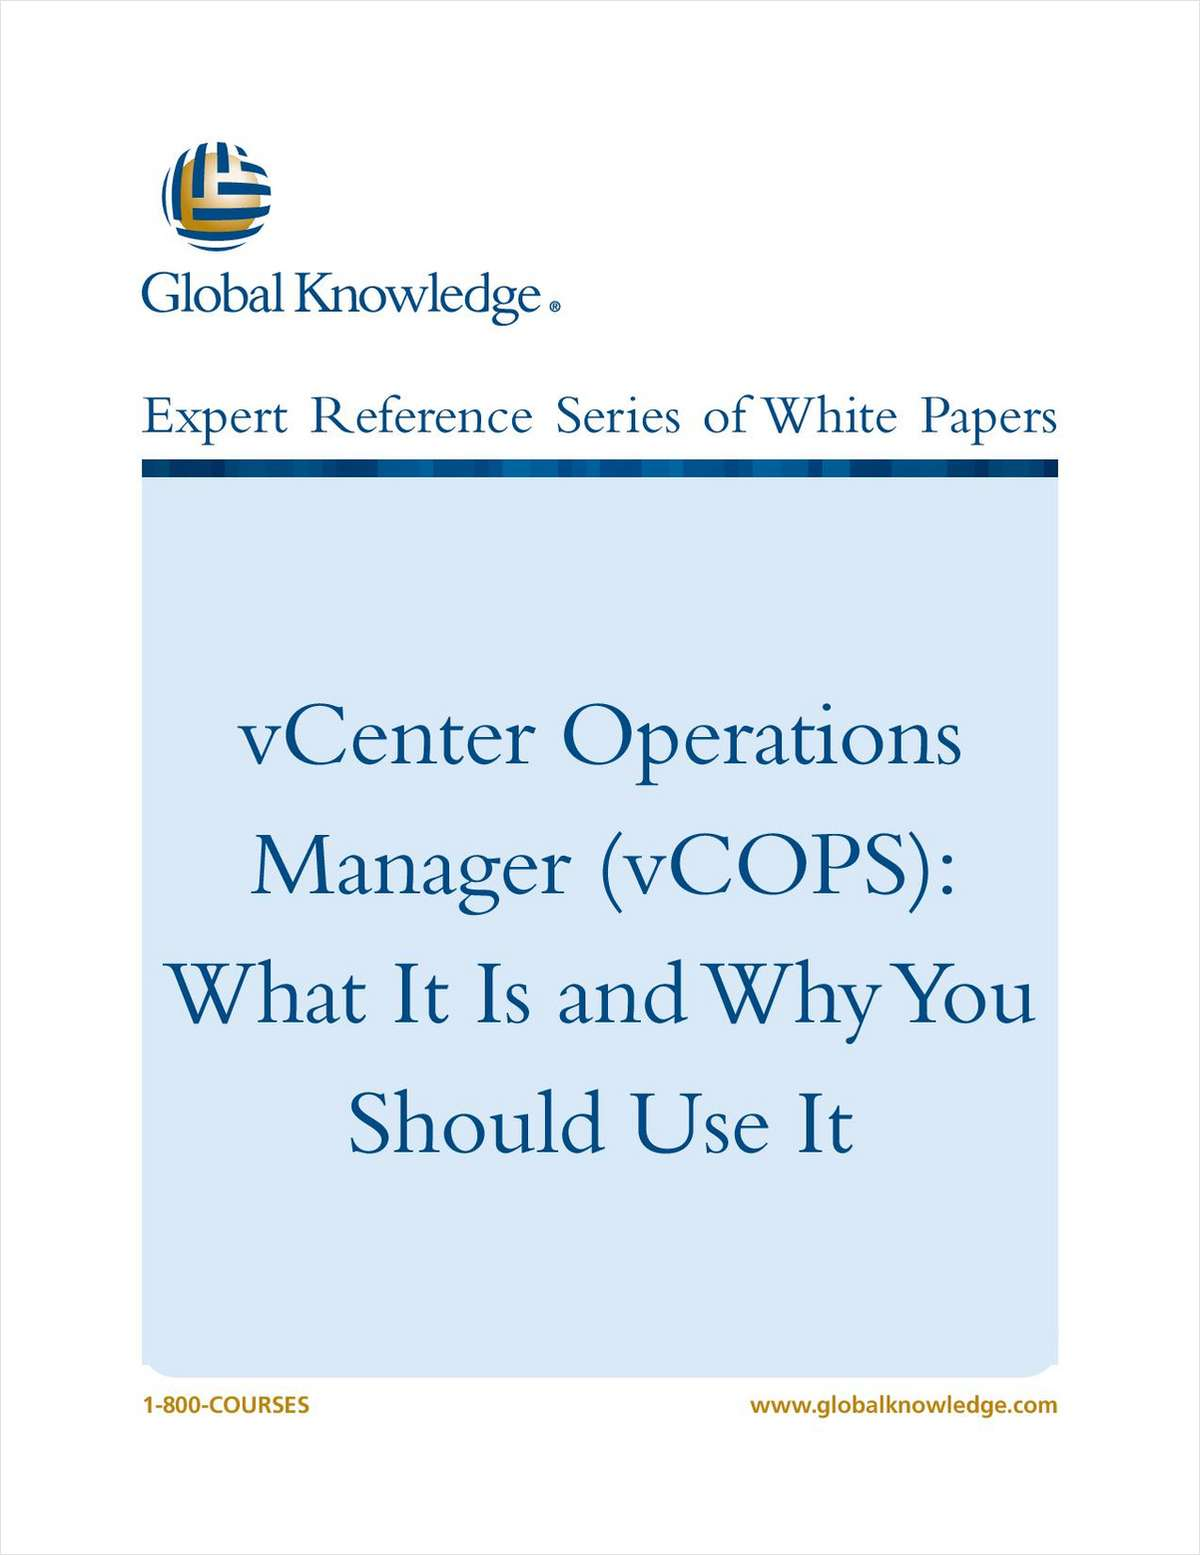 vCenter Operations Manager (vCOPS): What It Is and Why You Should Use It